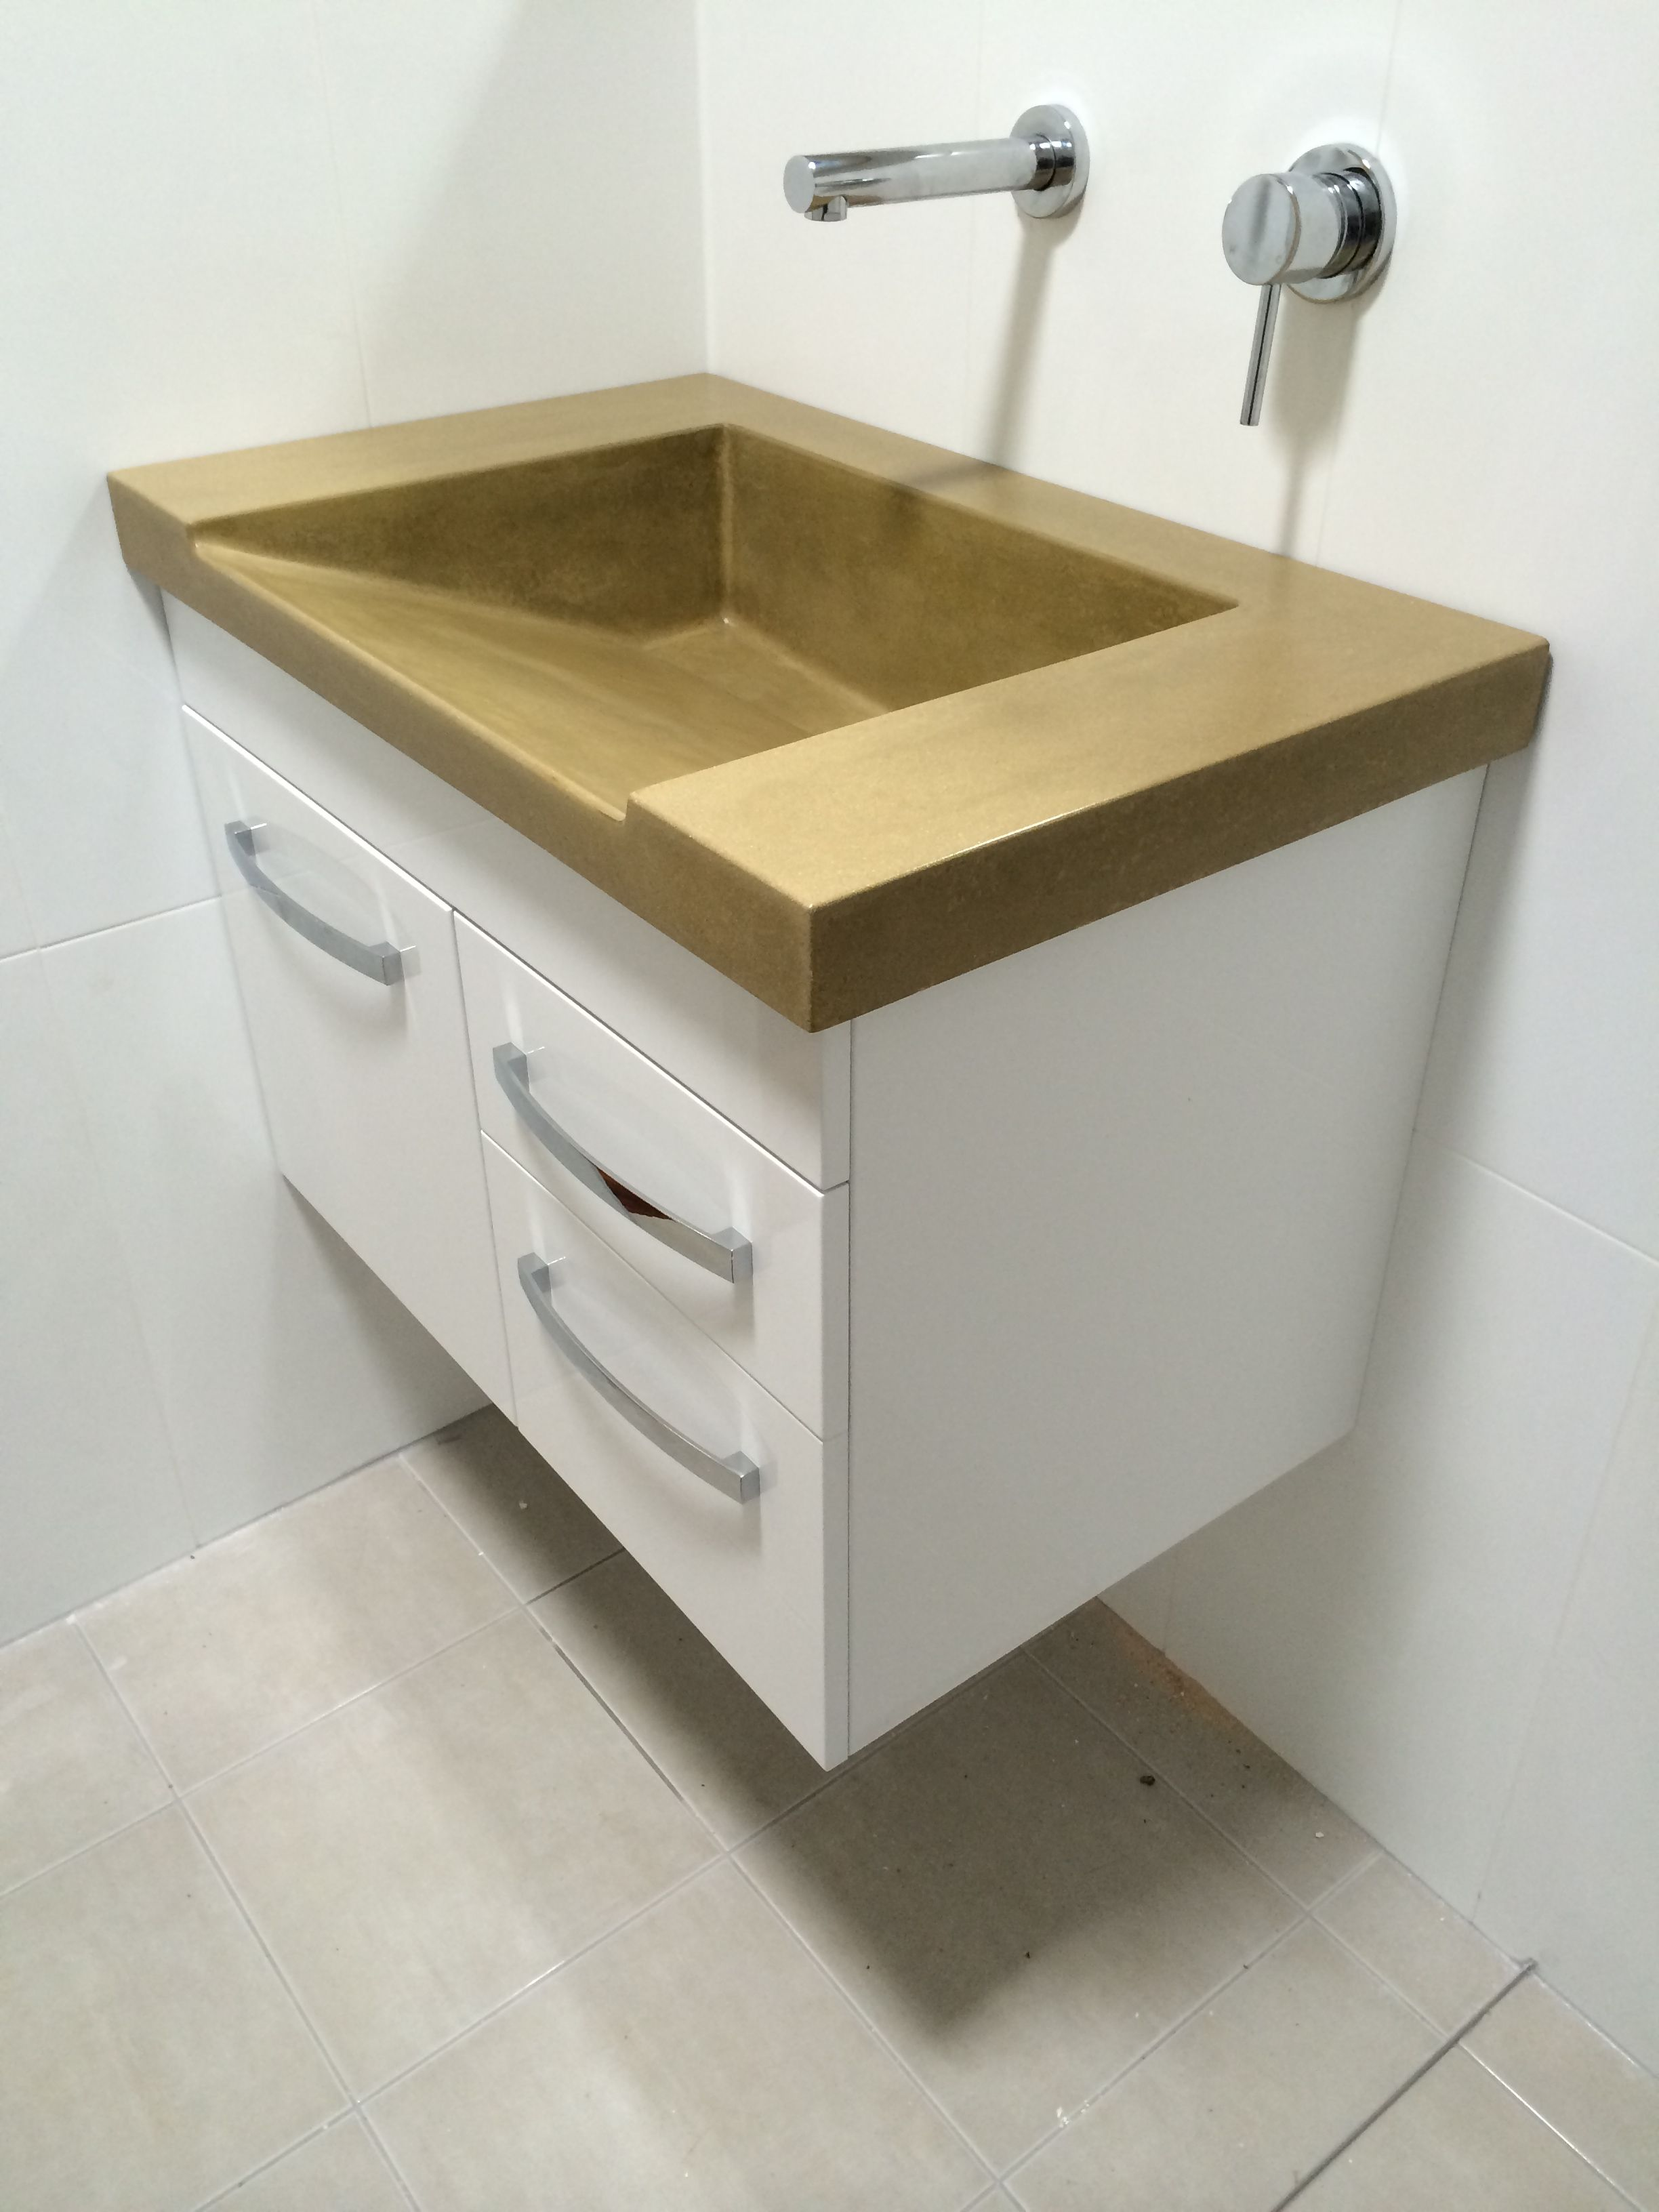 Custom Polished Concrete Vanity Top With Ramp Sink A Big